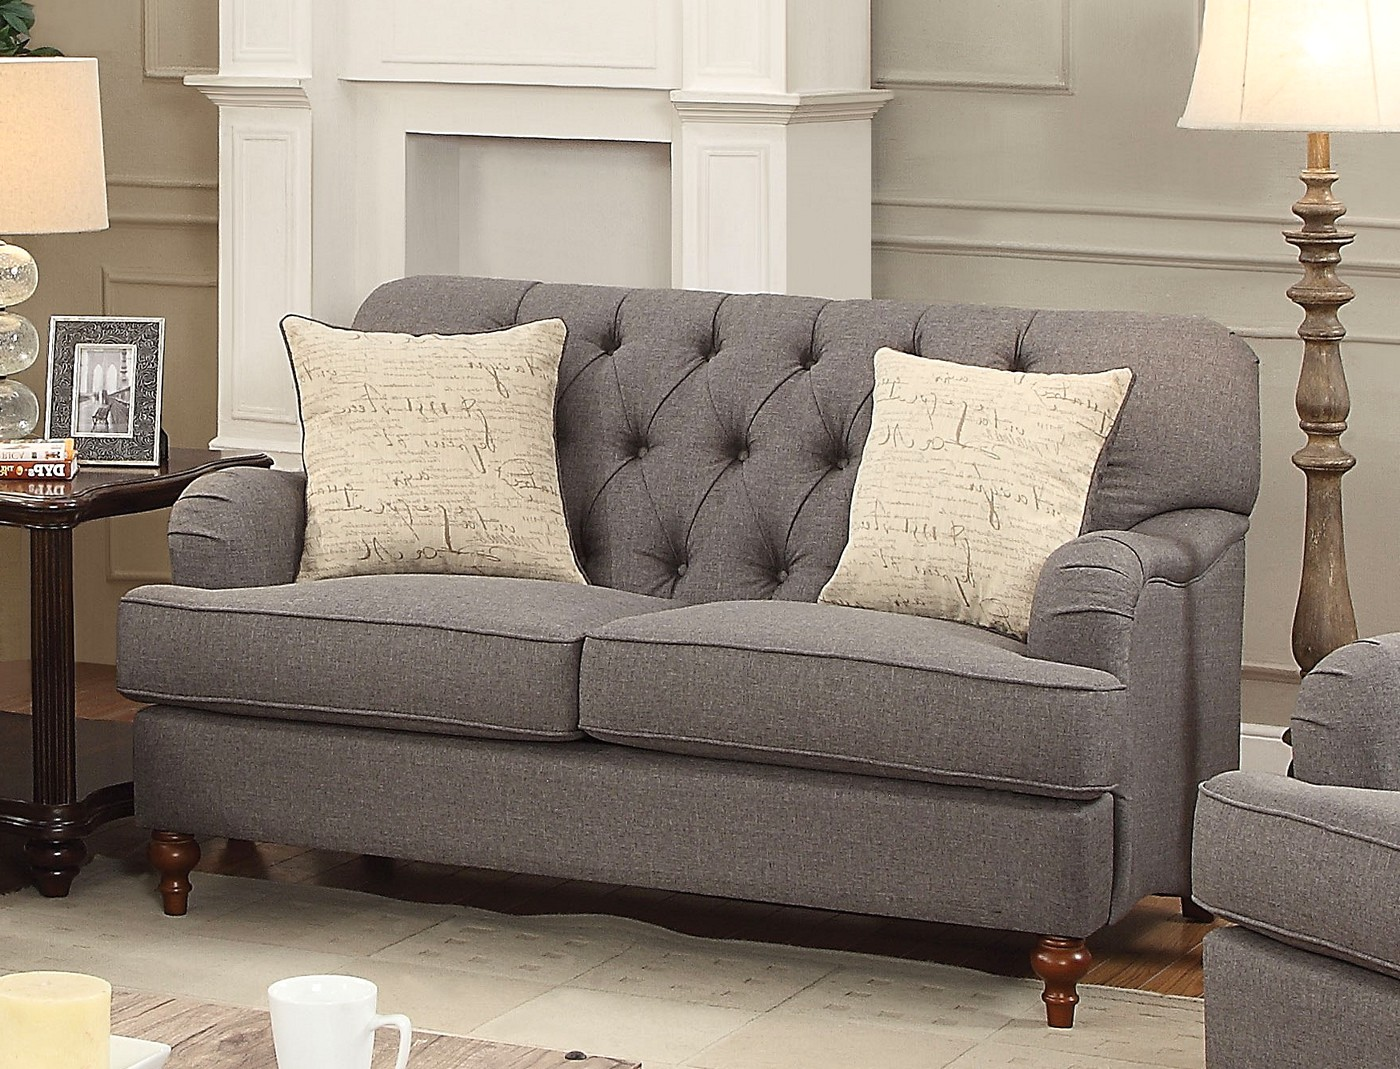 Aliza Contemporary Dark Gray Button Tufted Sofa & Loveseat Set